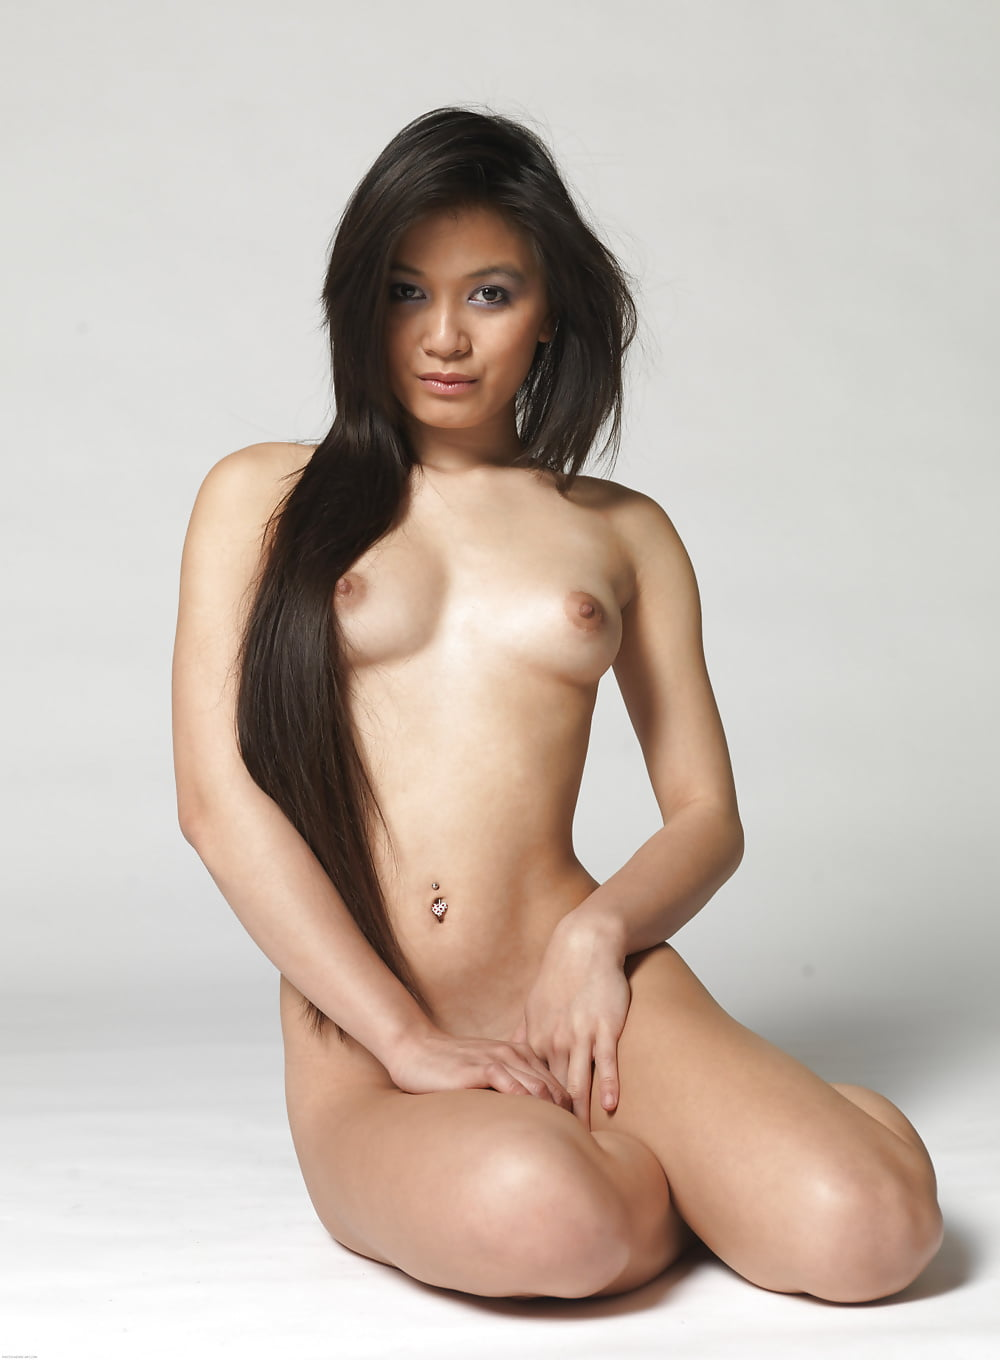 Indonesian nudes girls with long hair